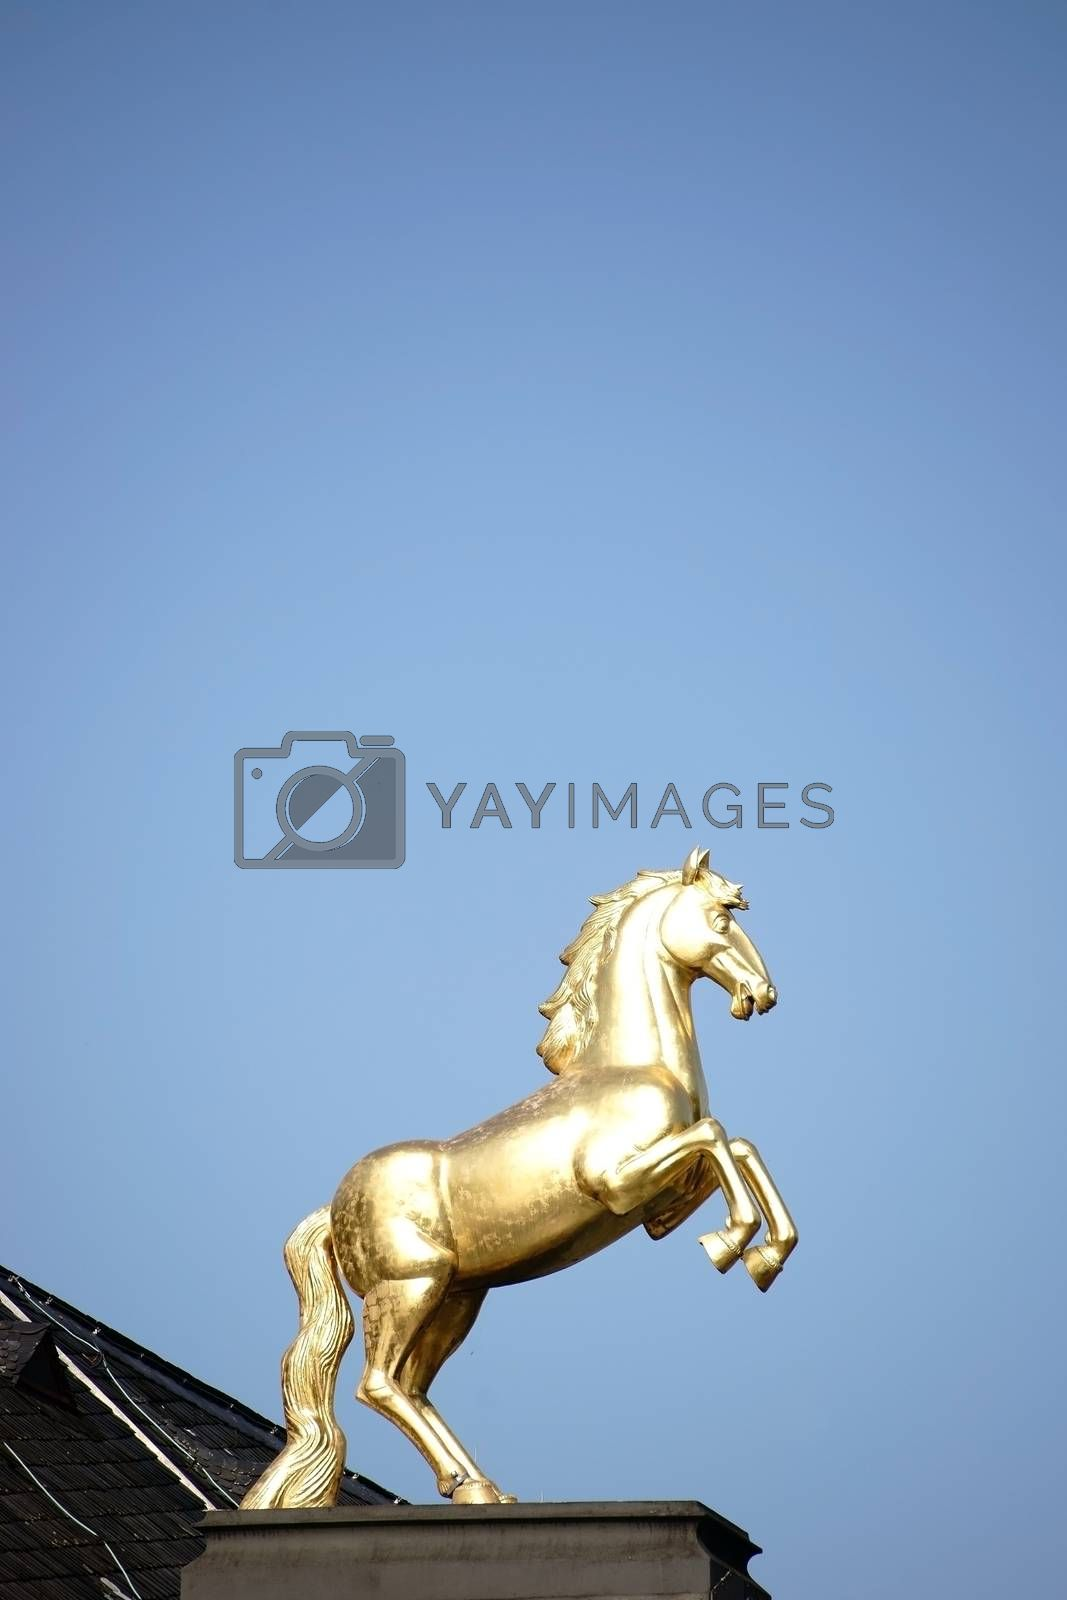 Mainz, Germany - October 02, 2015: The golden Ross sculpture on the roof of the main museum Mainz in the sunlight on October 02, 2015 in Mainz.